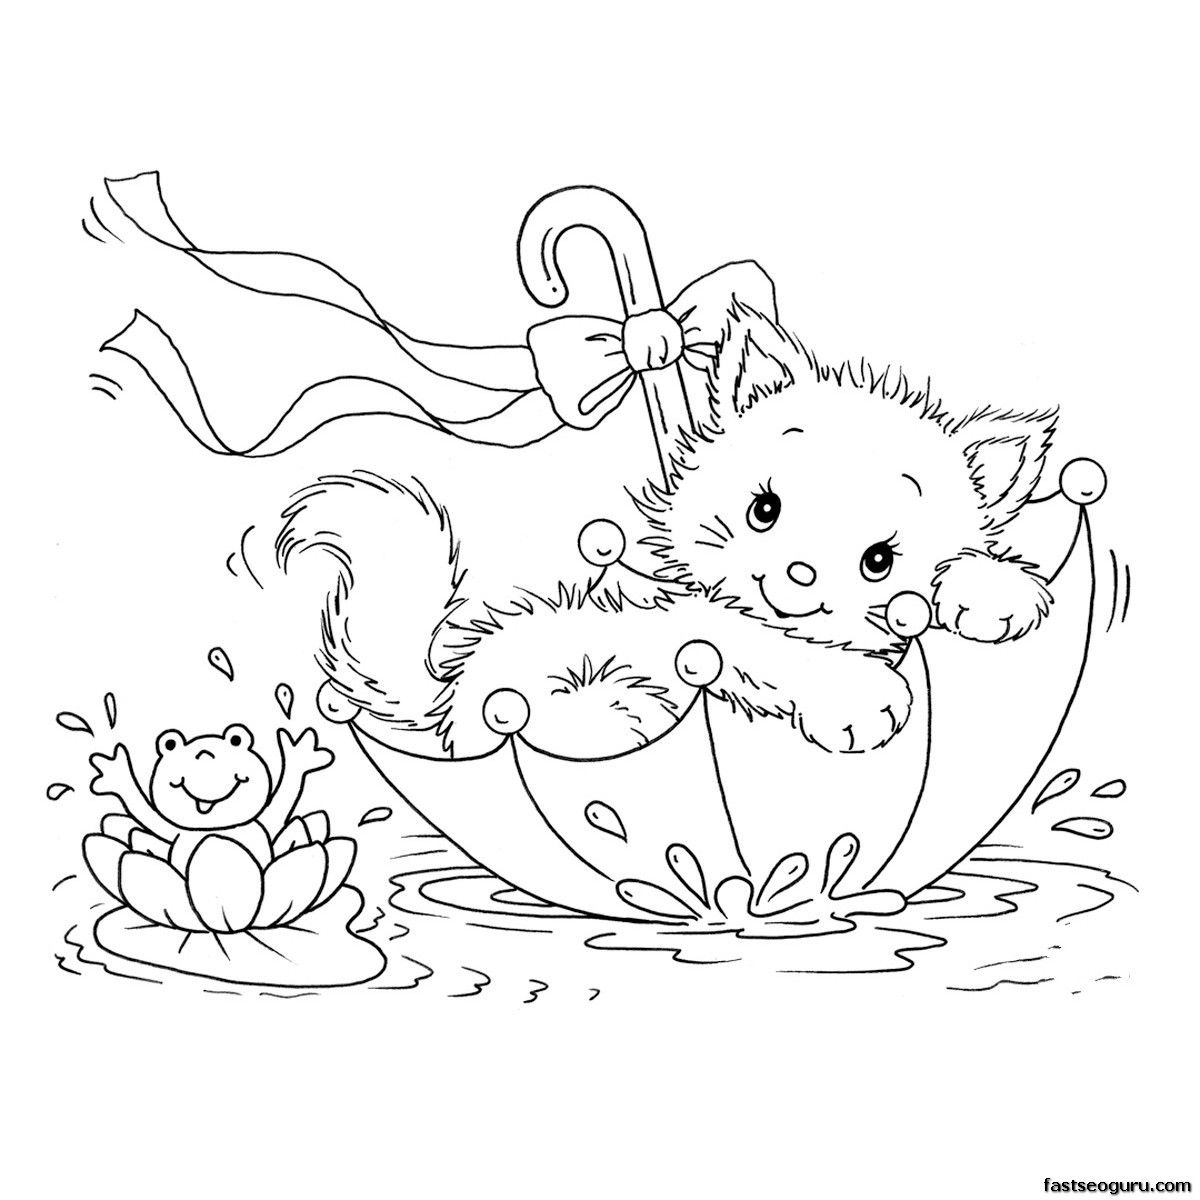 1200x1200 The Best Cat Coloring Pages To Print Printable Pic For Inspiration